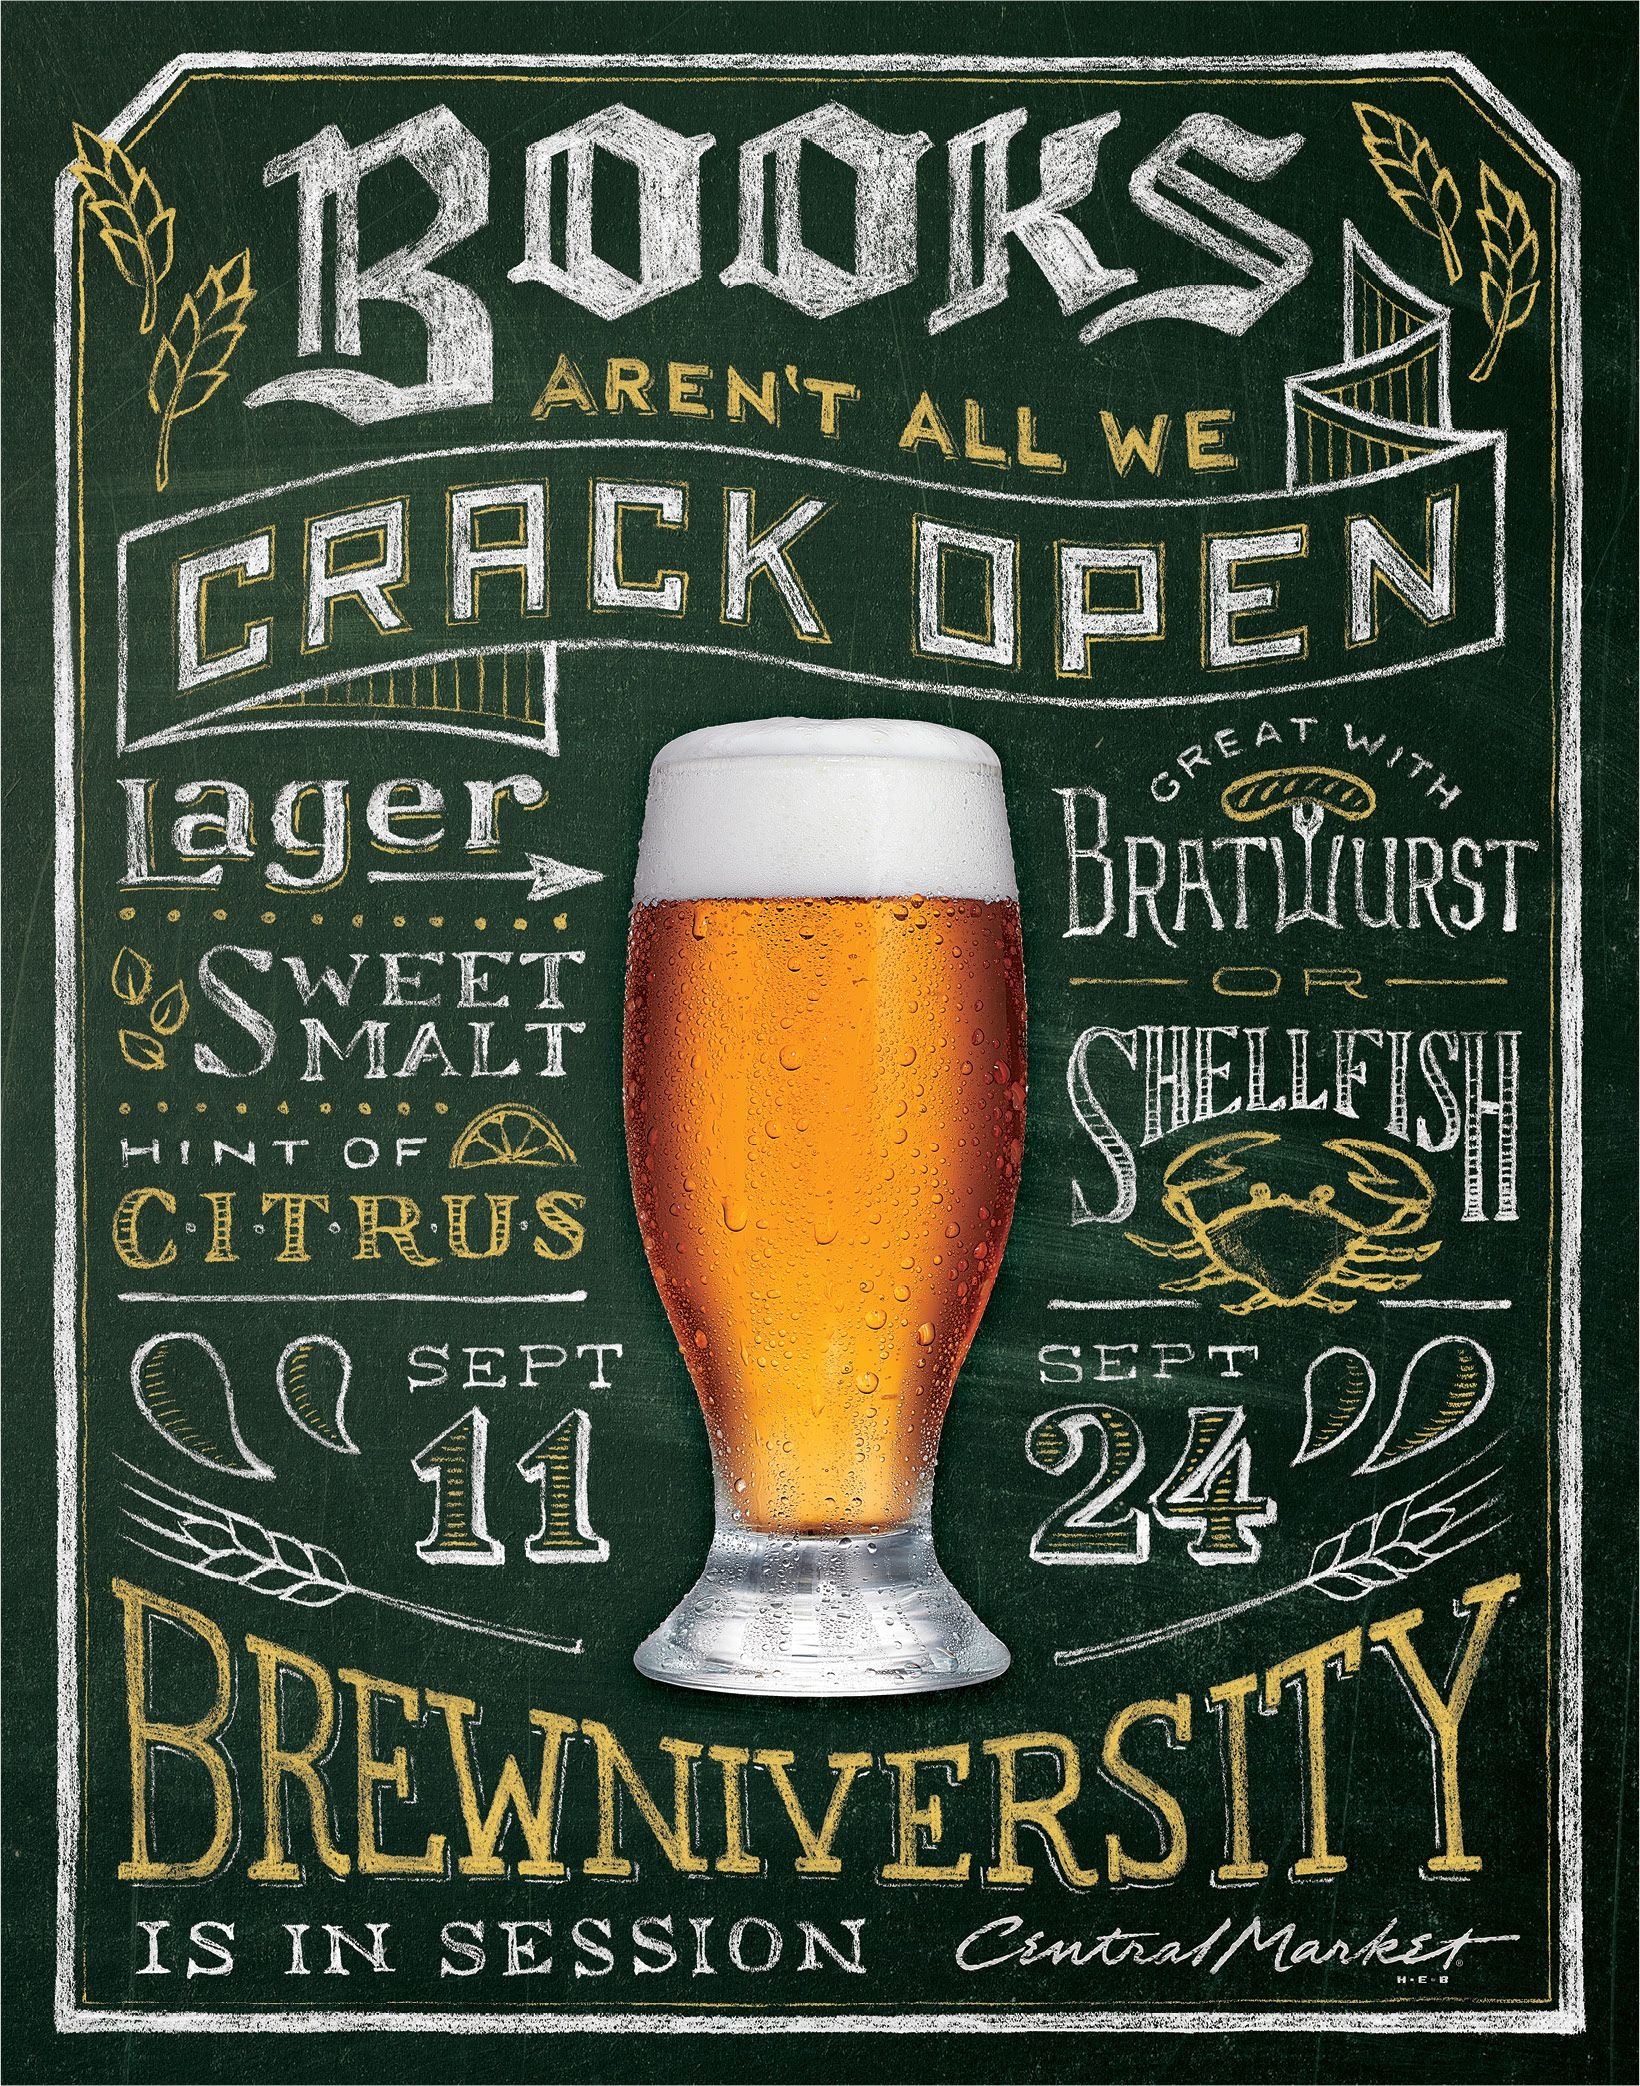 RBMM – Graphic Design Dallas, TX | Central Market Brewniversity beer ...